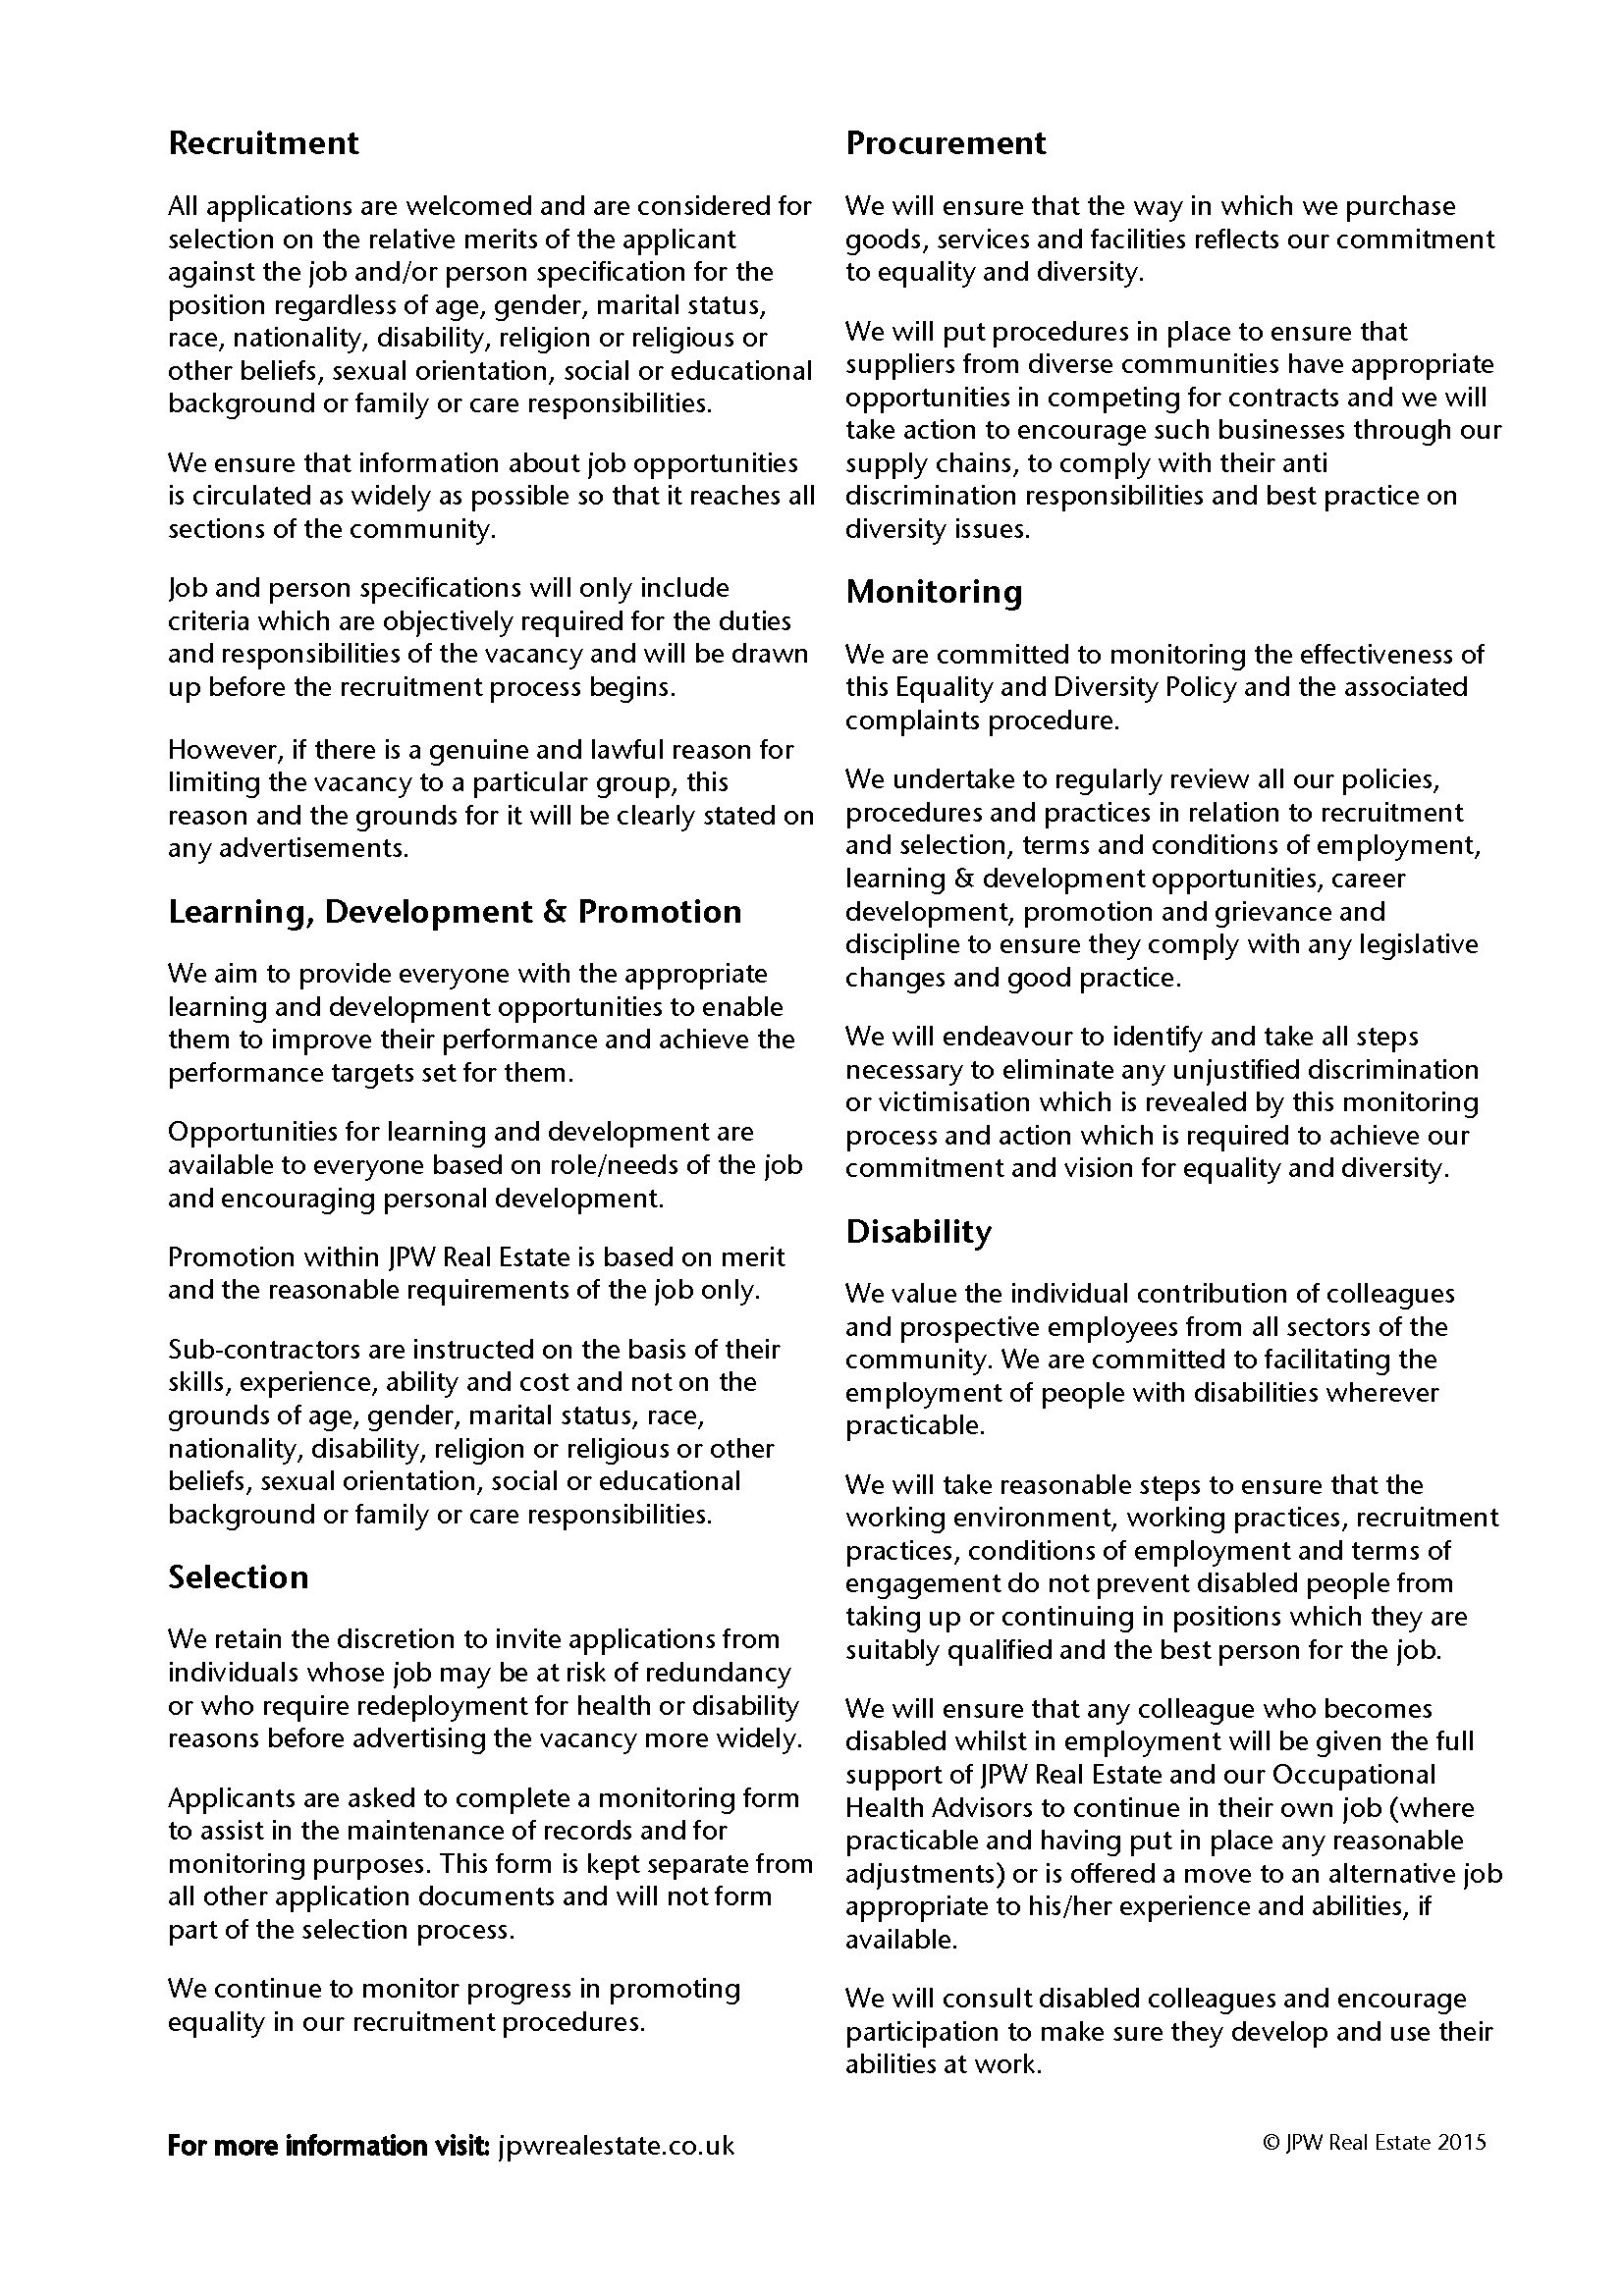 Jpw Equality Diversity Policy 2015 Page 2